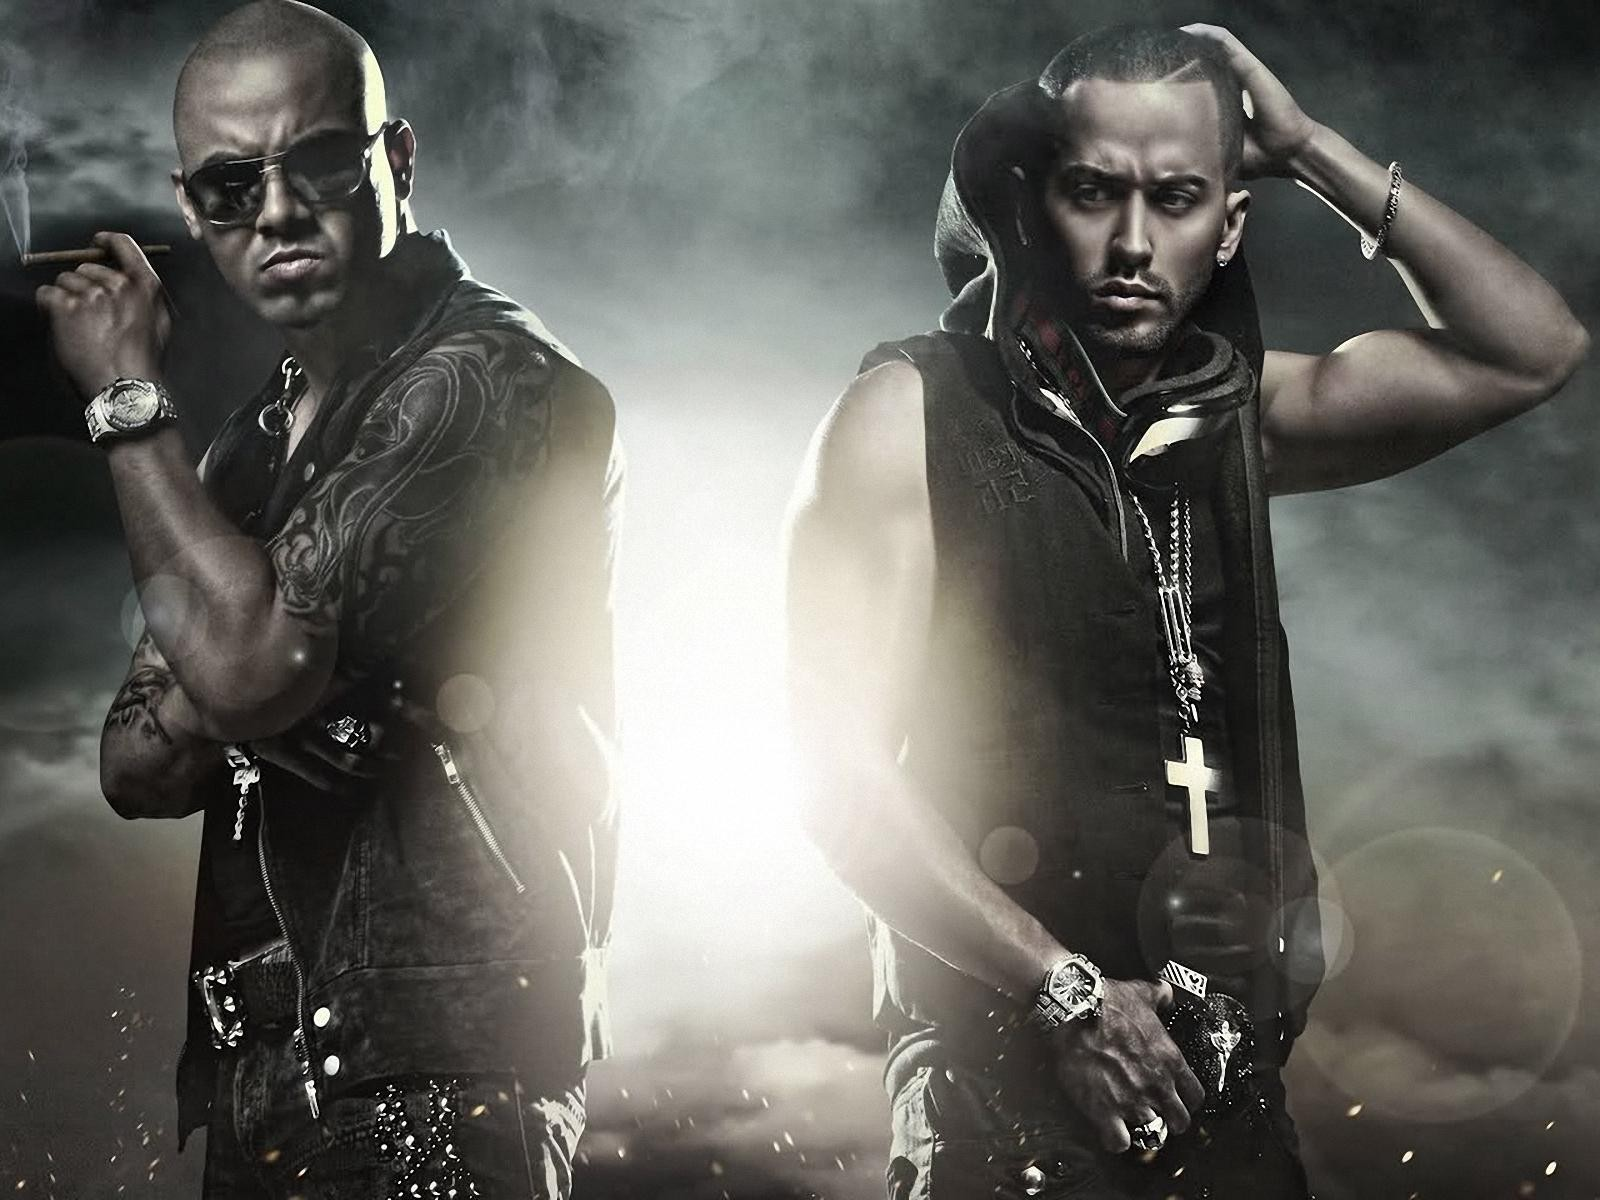 fotos y wallpapers de wisin y yandel 2012 hot new